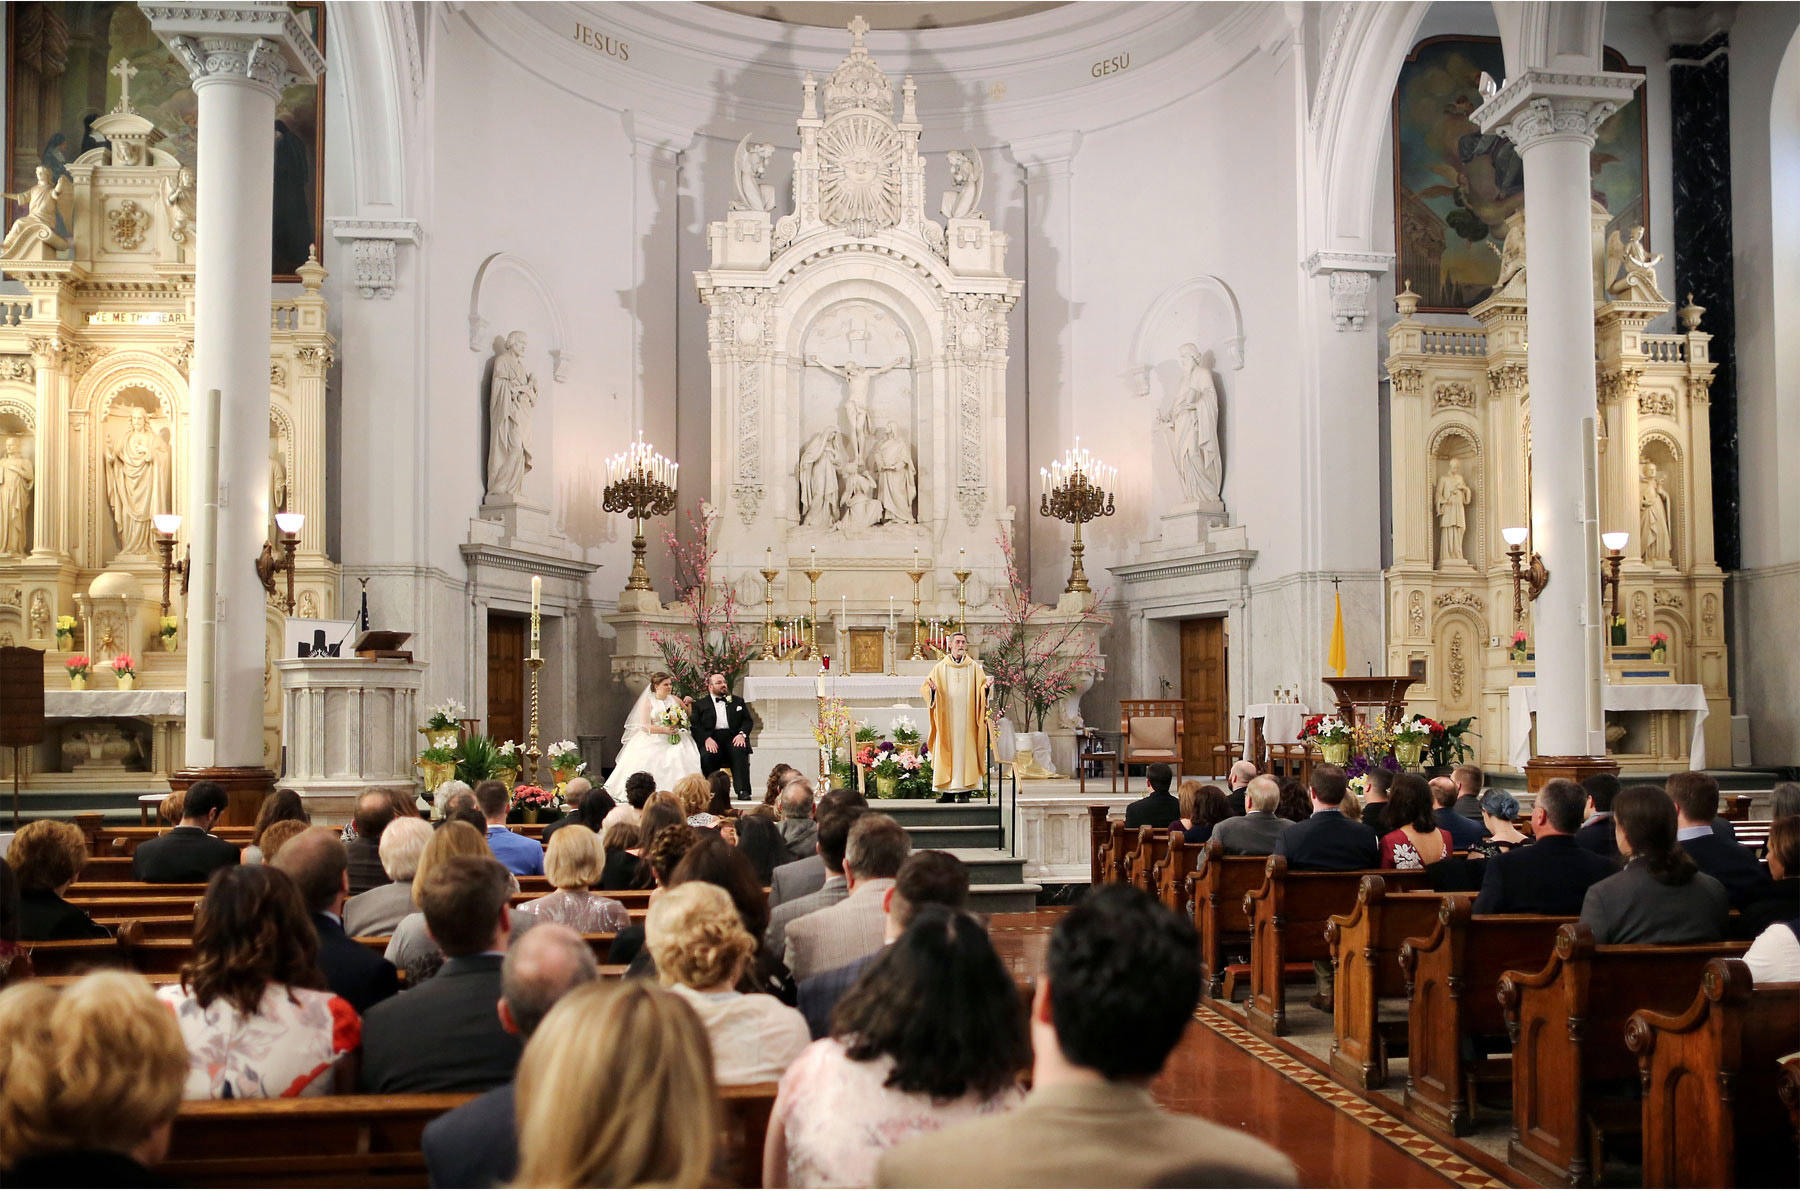 08-Michigan-Wedding-Photography-by-Vick-Photography-Ss.-Peter-&-Paul-Jesuit-Church-Ceremony-Janell-and-Anthony.jpg